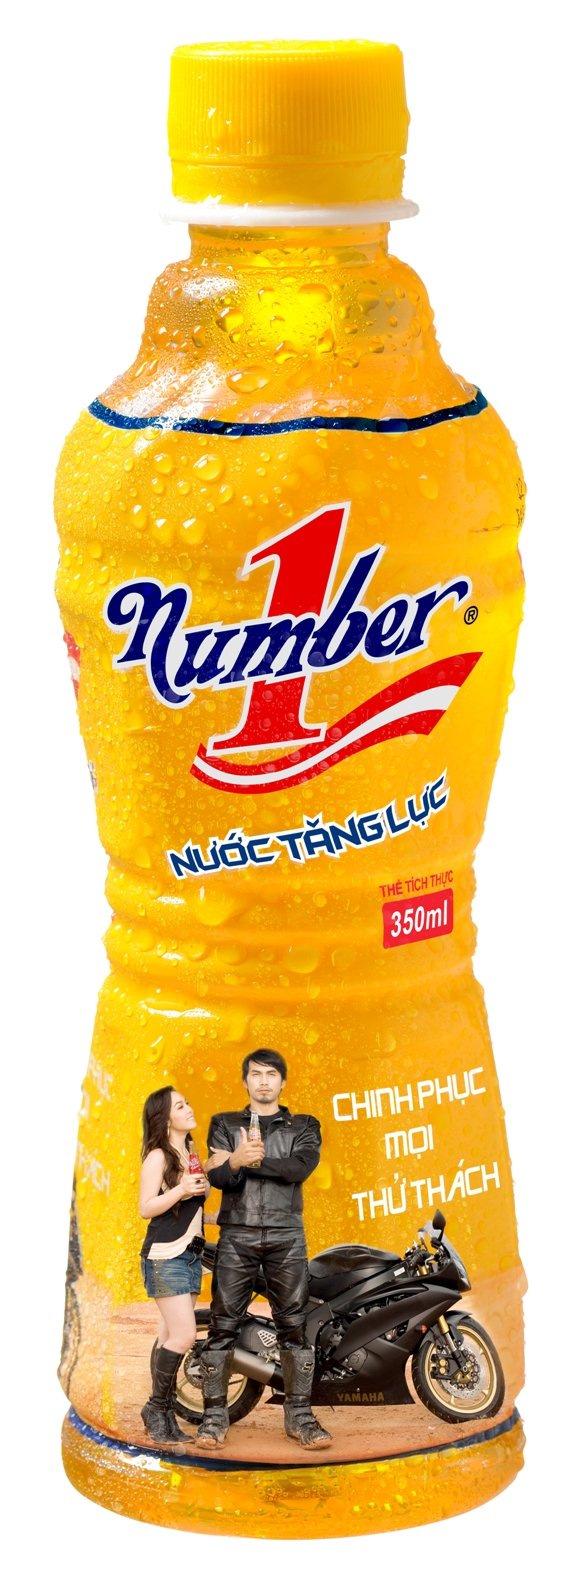 """Number 1 Energy Drink is one of the leading brands in Vietnam and has been voted by consumers for """"V..."""